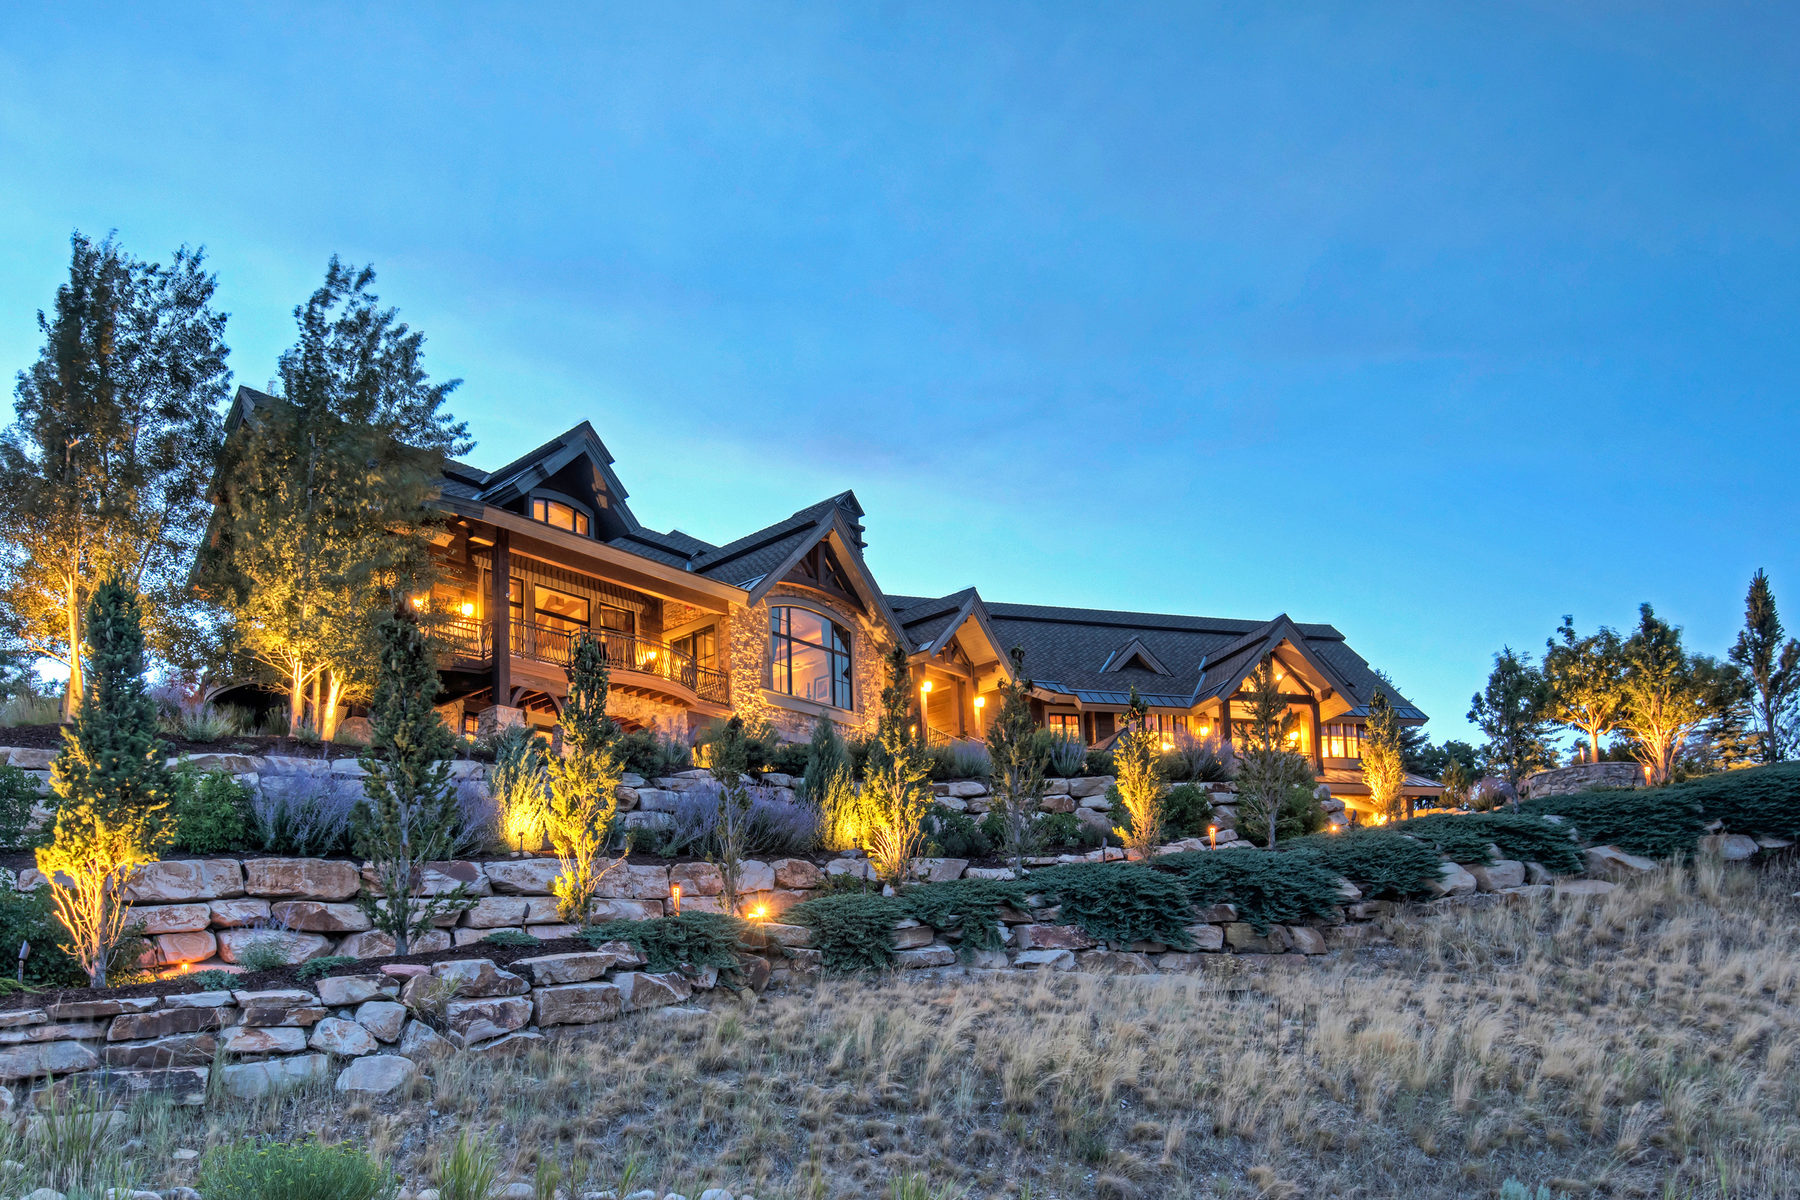 一戸建て のために 売買 アット Great Deer Valley, Park City, Uinta Views! Fabulous Promontory Home! 8053 N Sunrise Loop Lot #47 Park City, ユタ, 84098 アメリカ合衆国